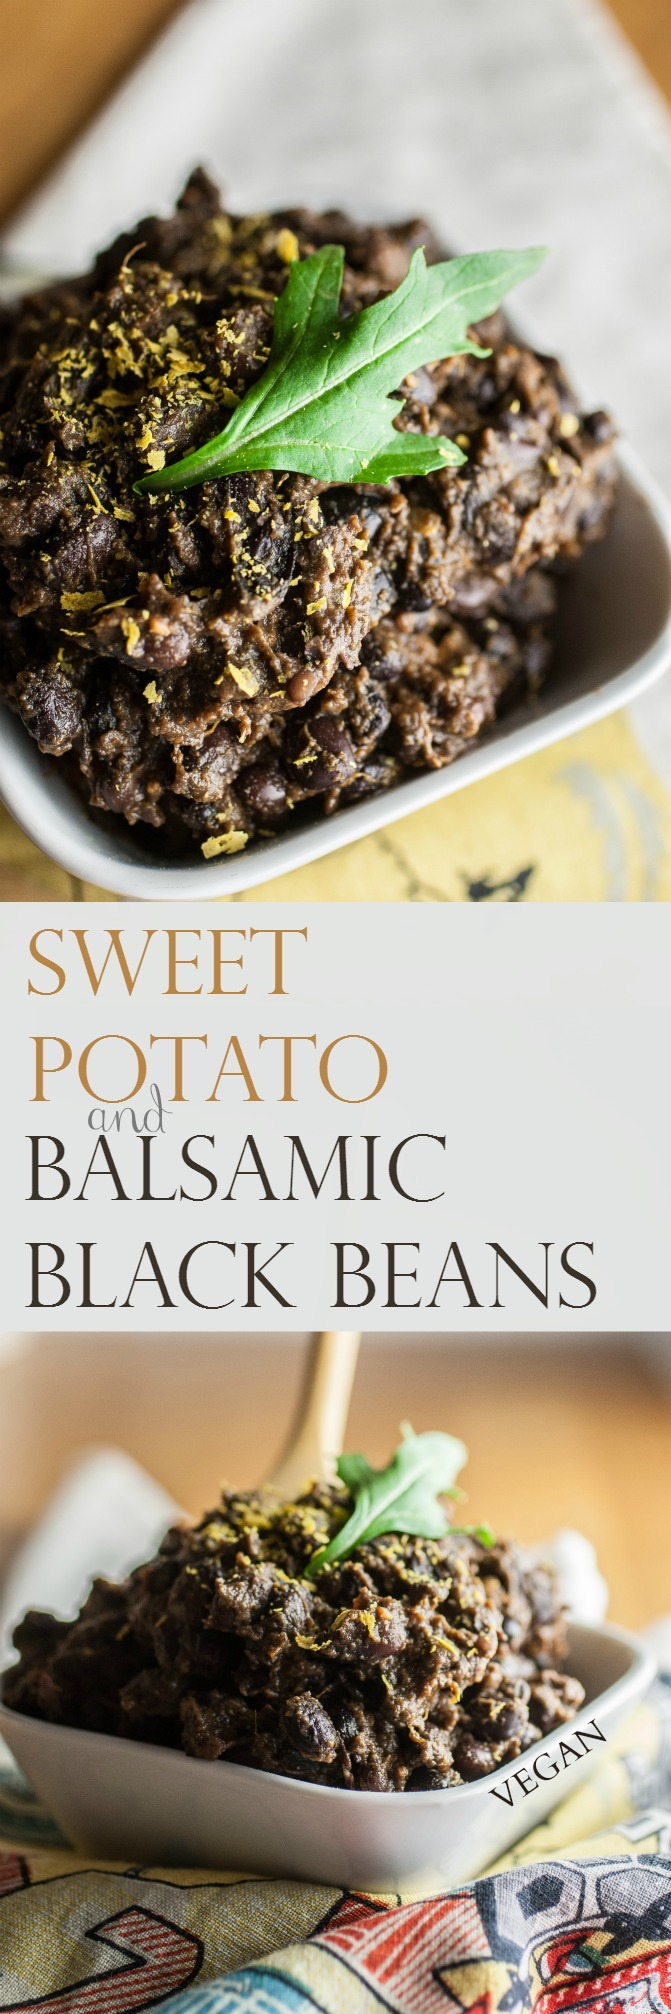 Produce On Parade - Sweet Potato & Balsamic Black Beans - Tender black beans combine with chunks of sweet potatoes and bathe in a spiced balsamic sauce for a healthy and delicious side. I've included instructions for using a pressure cooker or a soup pot.